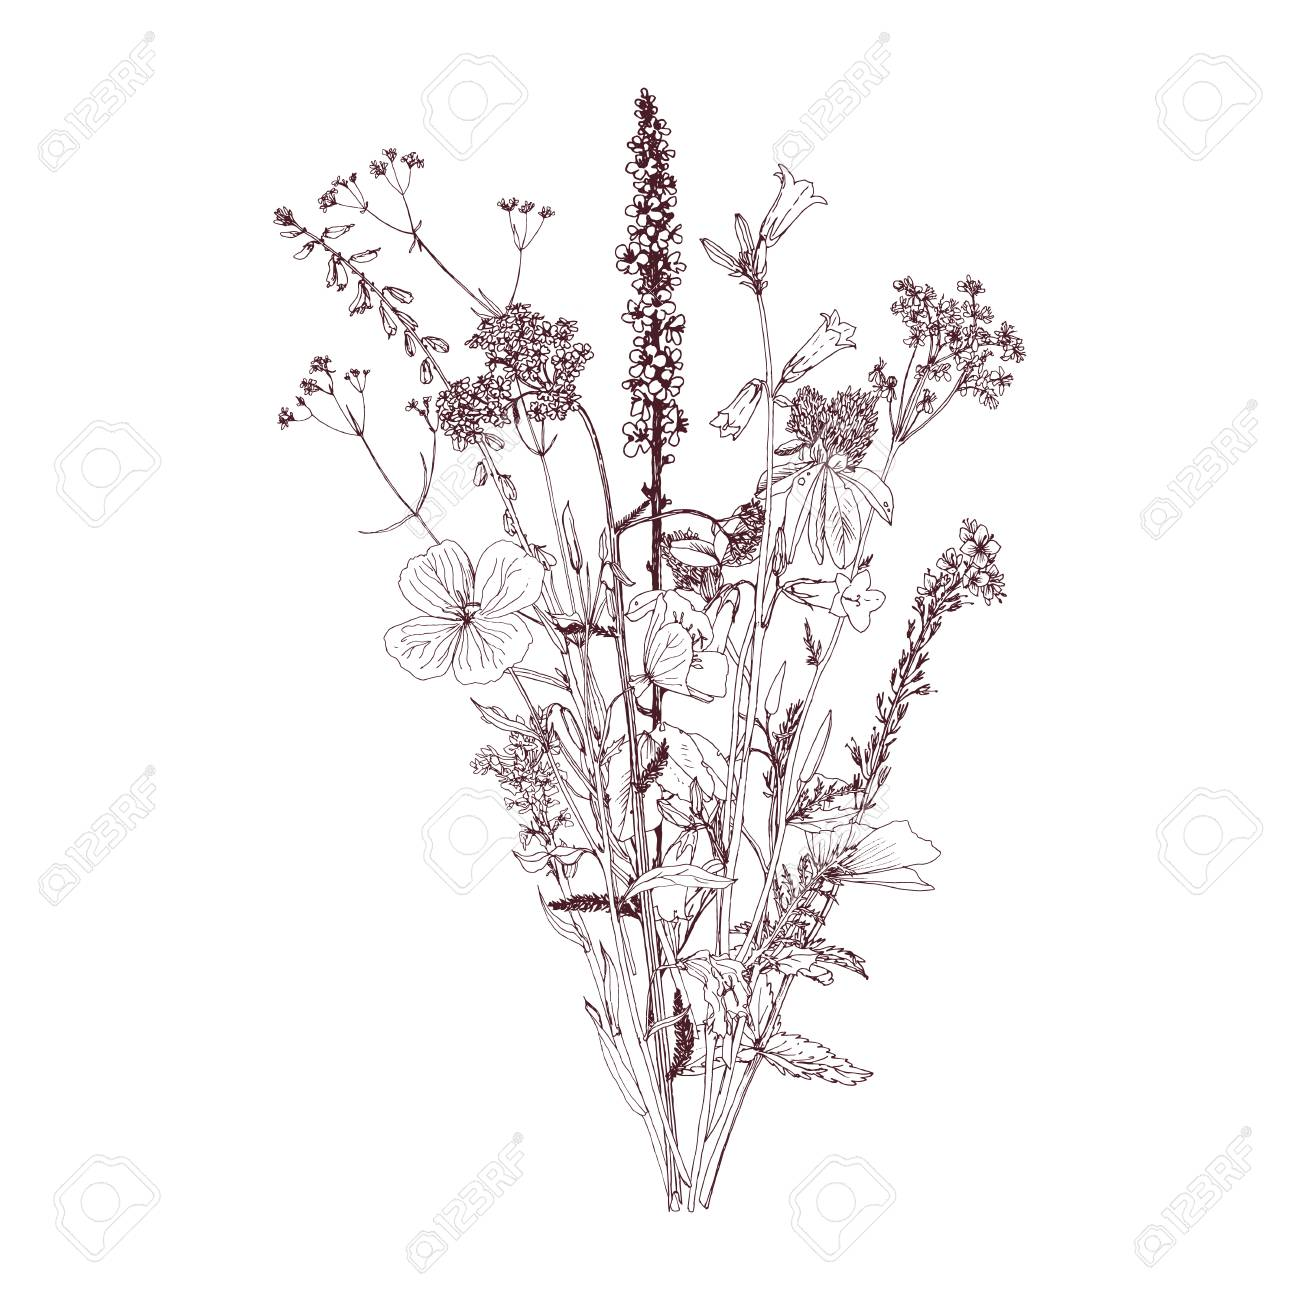 Vector Bouquet With Drawing Wild Plants Herbs And Flowers Monochrome Royalty Free Cliparts Vectors And Stock Illustration Image 87116097